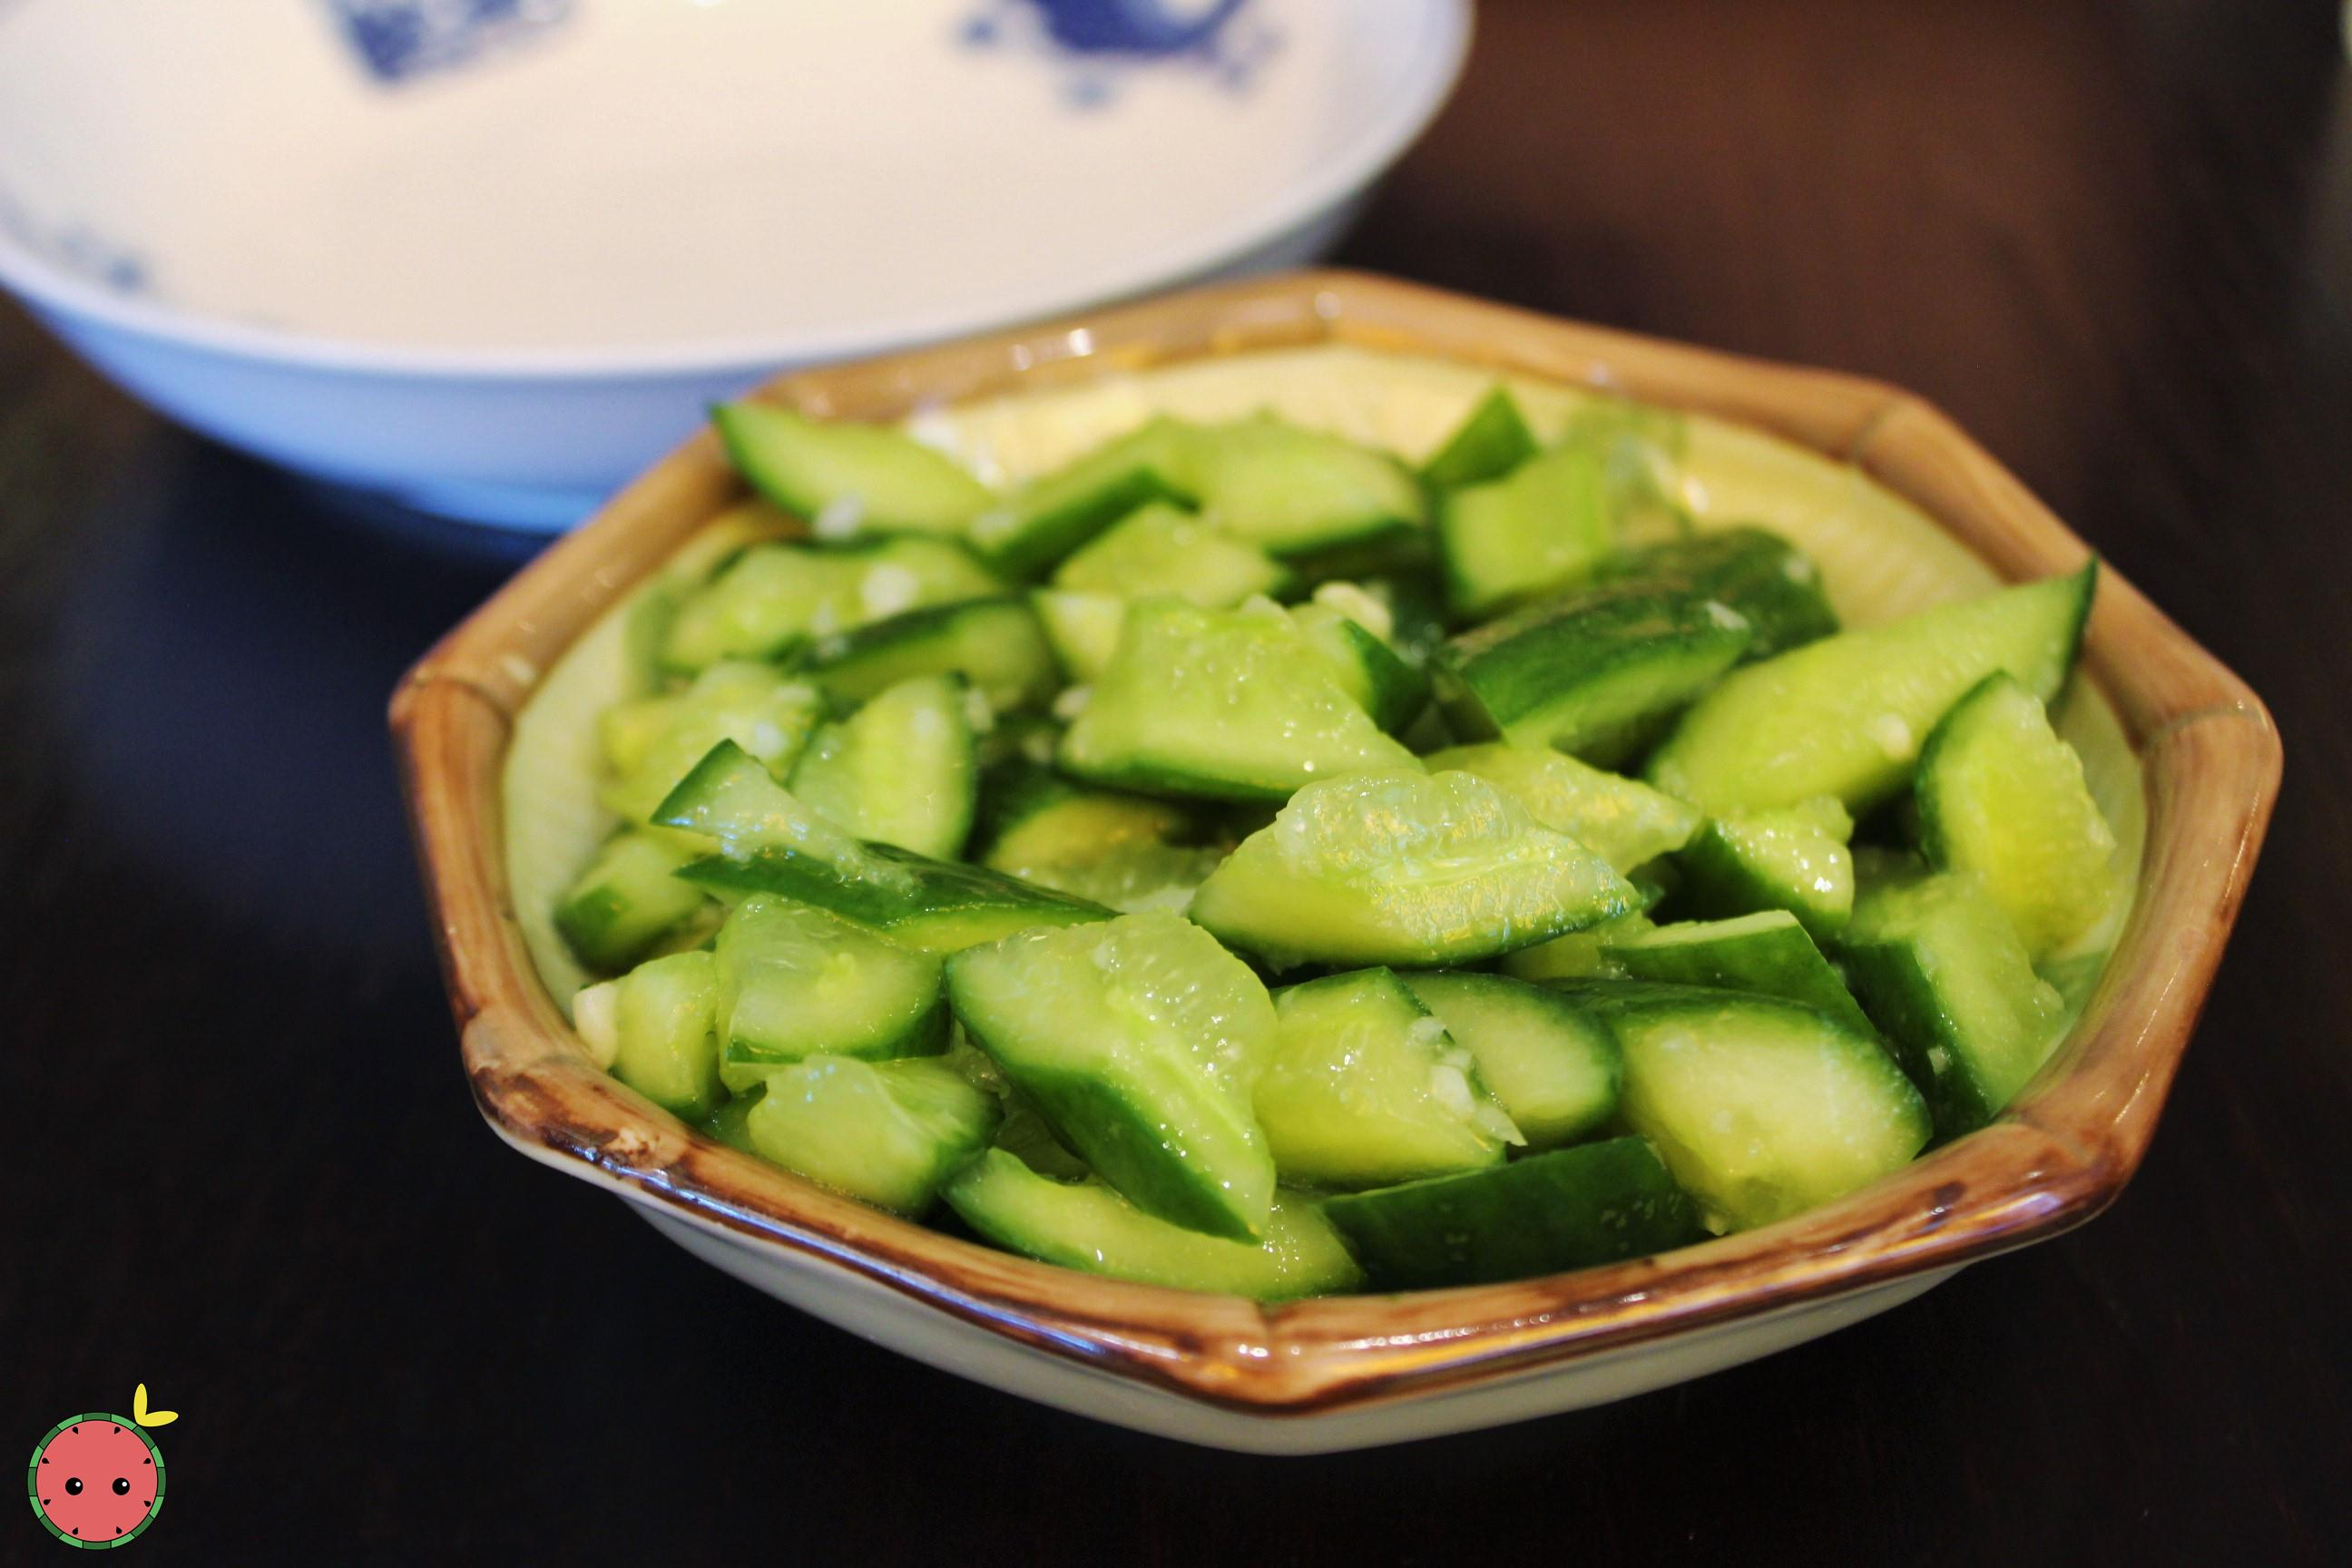 Baby Cucumber - Young cucumber in garlic sauce